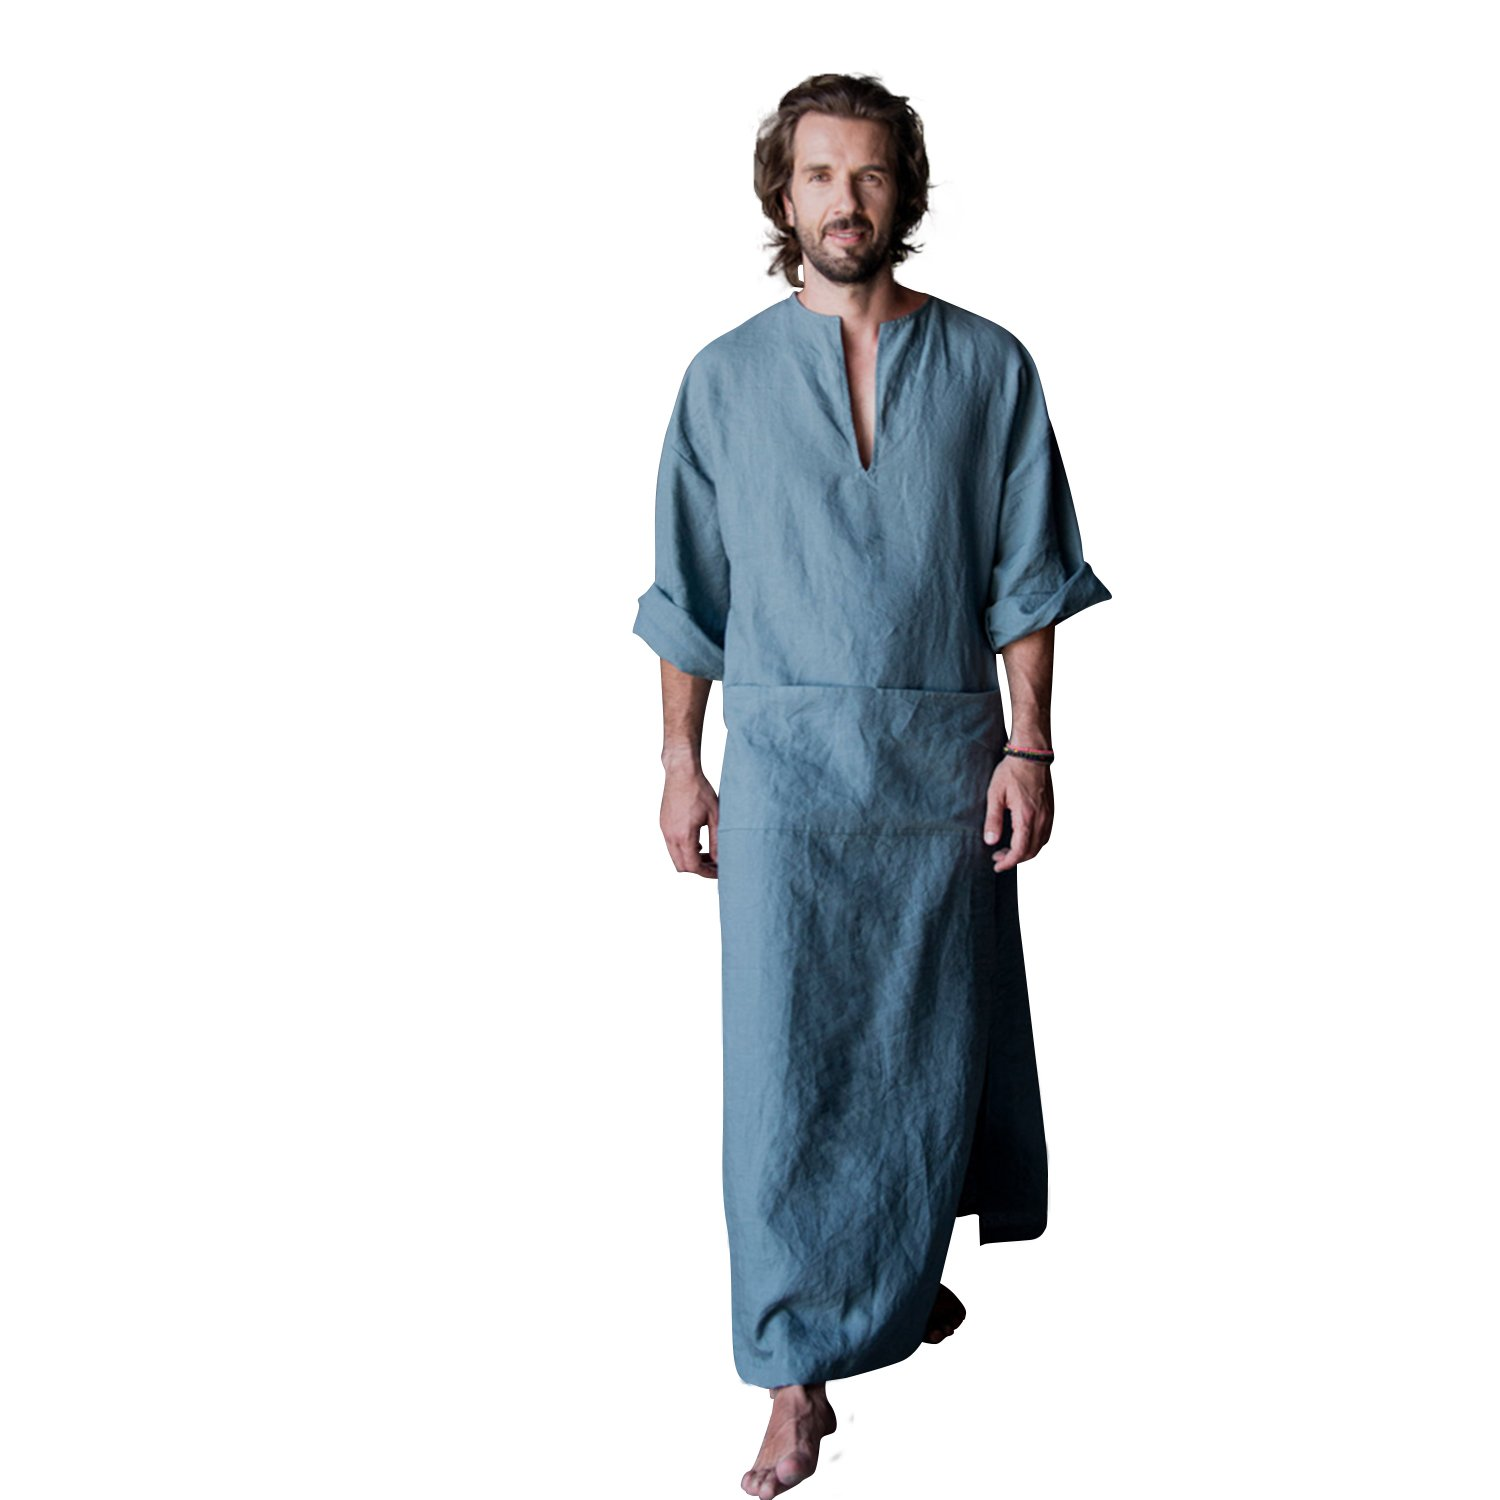 7 VEILS Mens Cotton and Linen Ultra Length Ankle-Length Robe Bathrobe Gown-Blue-M